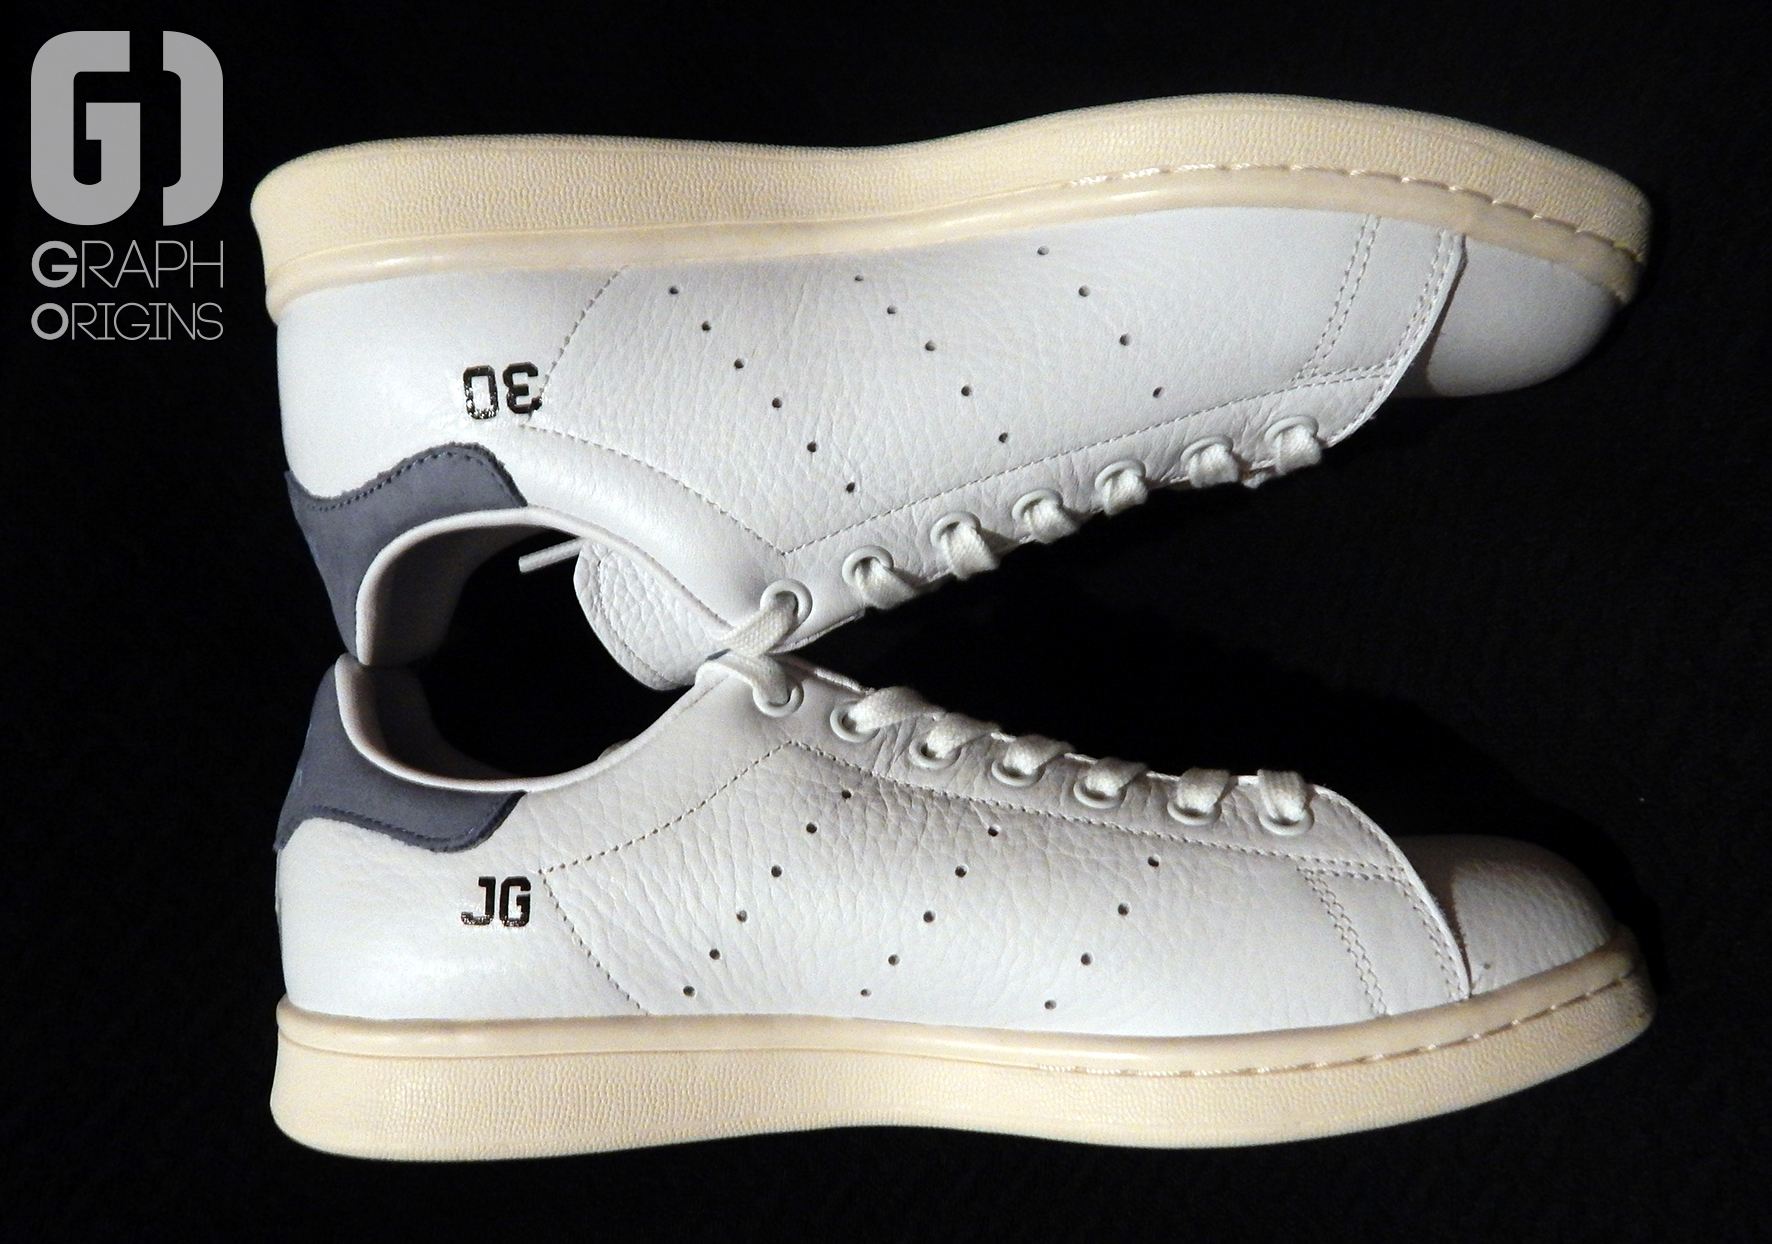 Custom baskets adidas Stan Smith Feliz Cumple graph origins 4